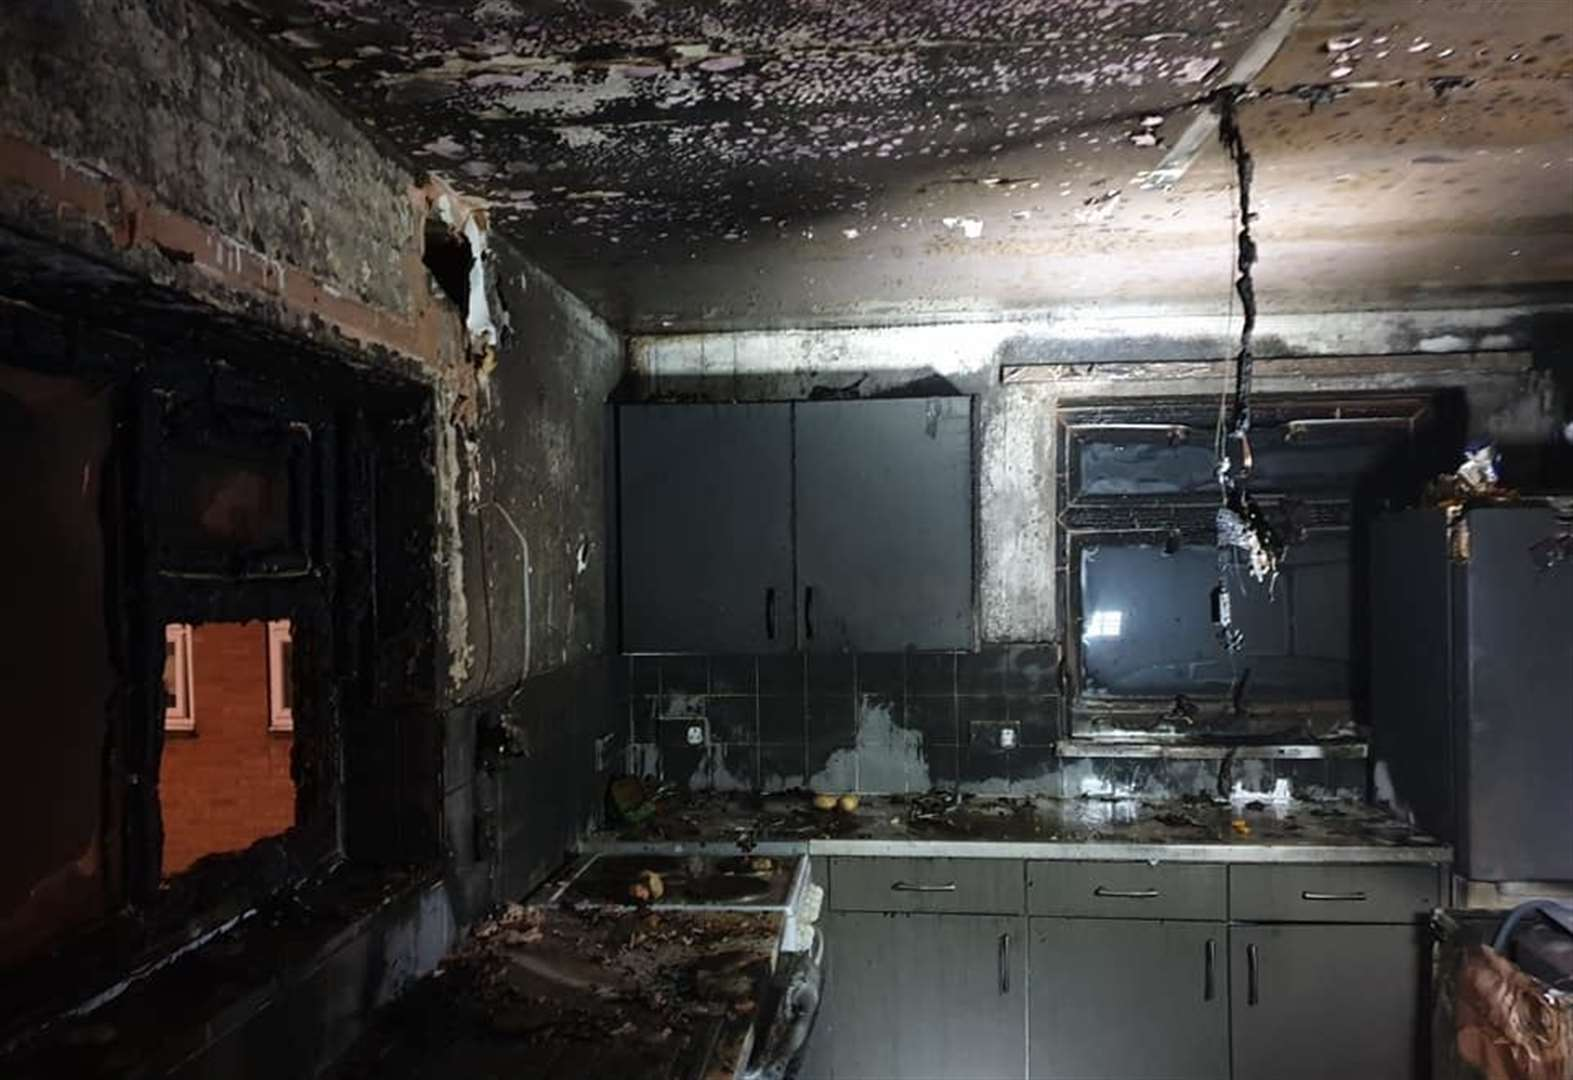 Mum and daughter escape devastating fire